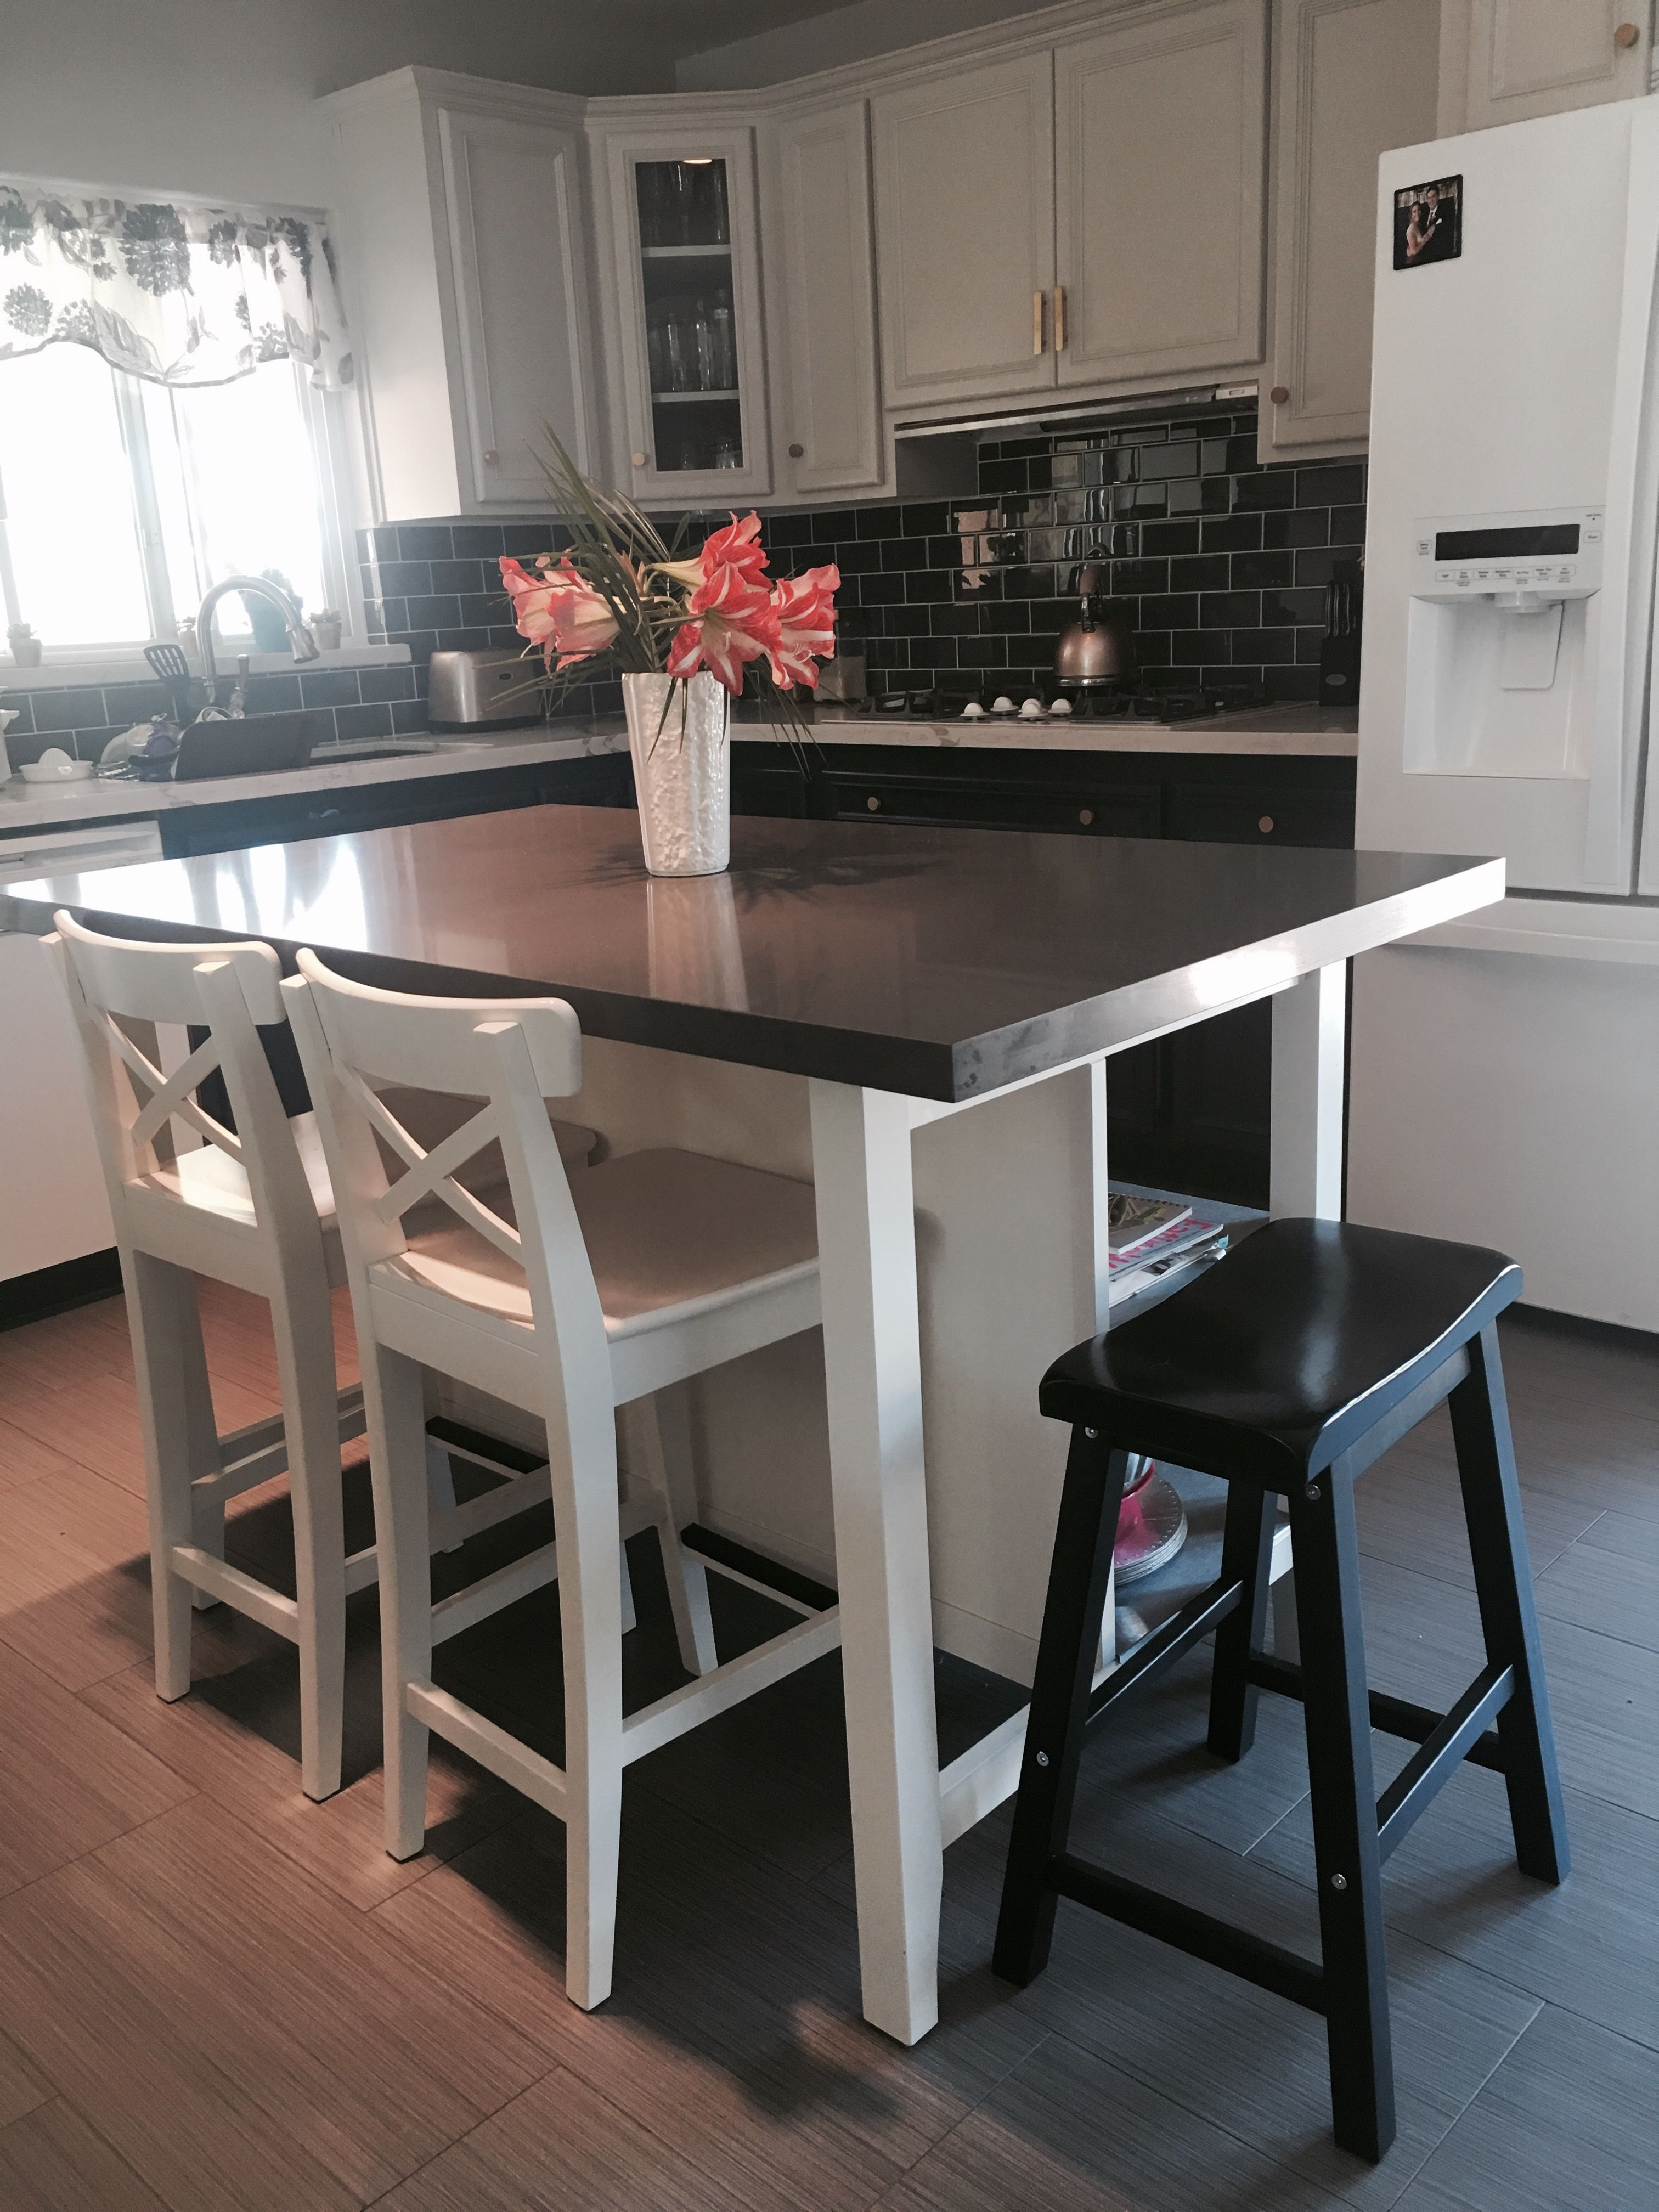 Quartz Argenteuil Best Here Is Another View Of Our Ikea Island We Added Grey